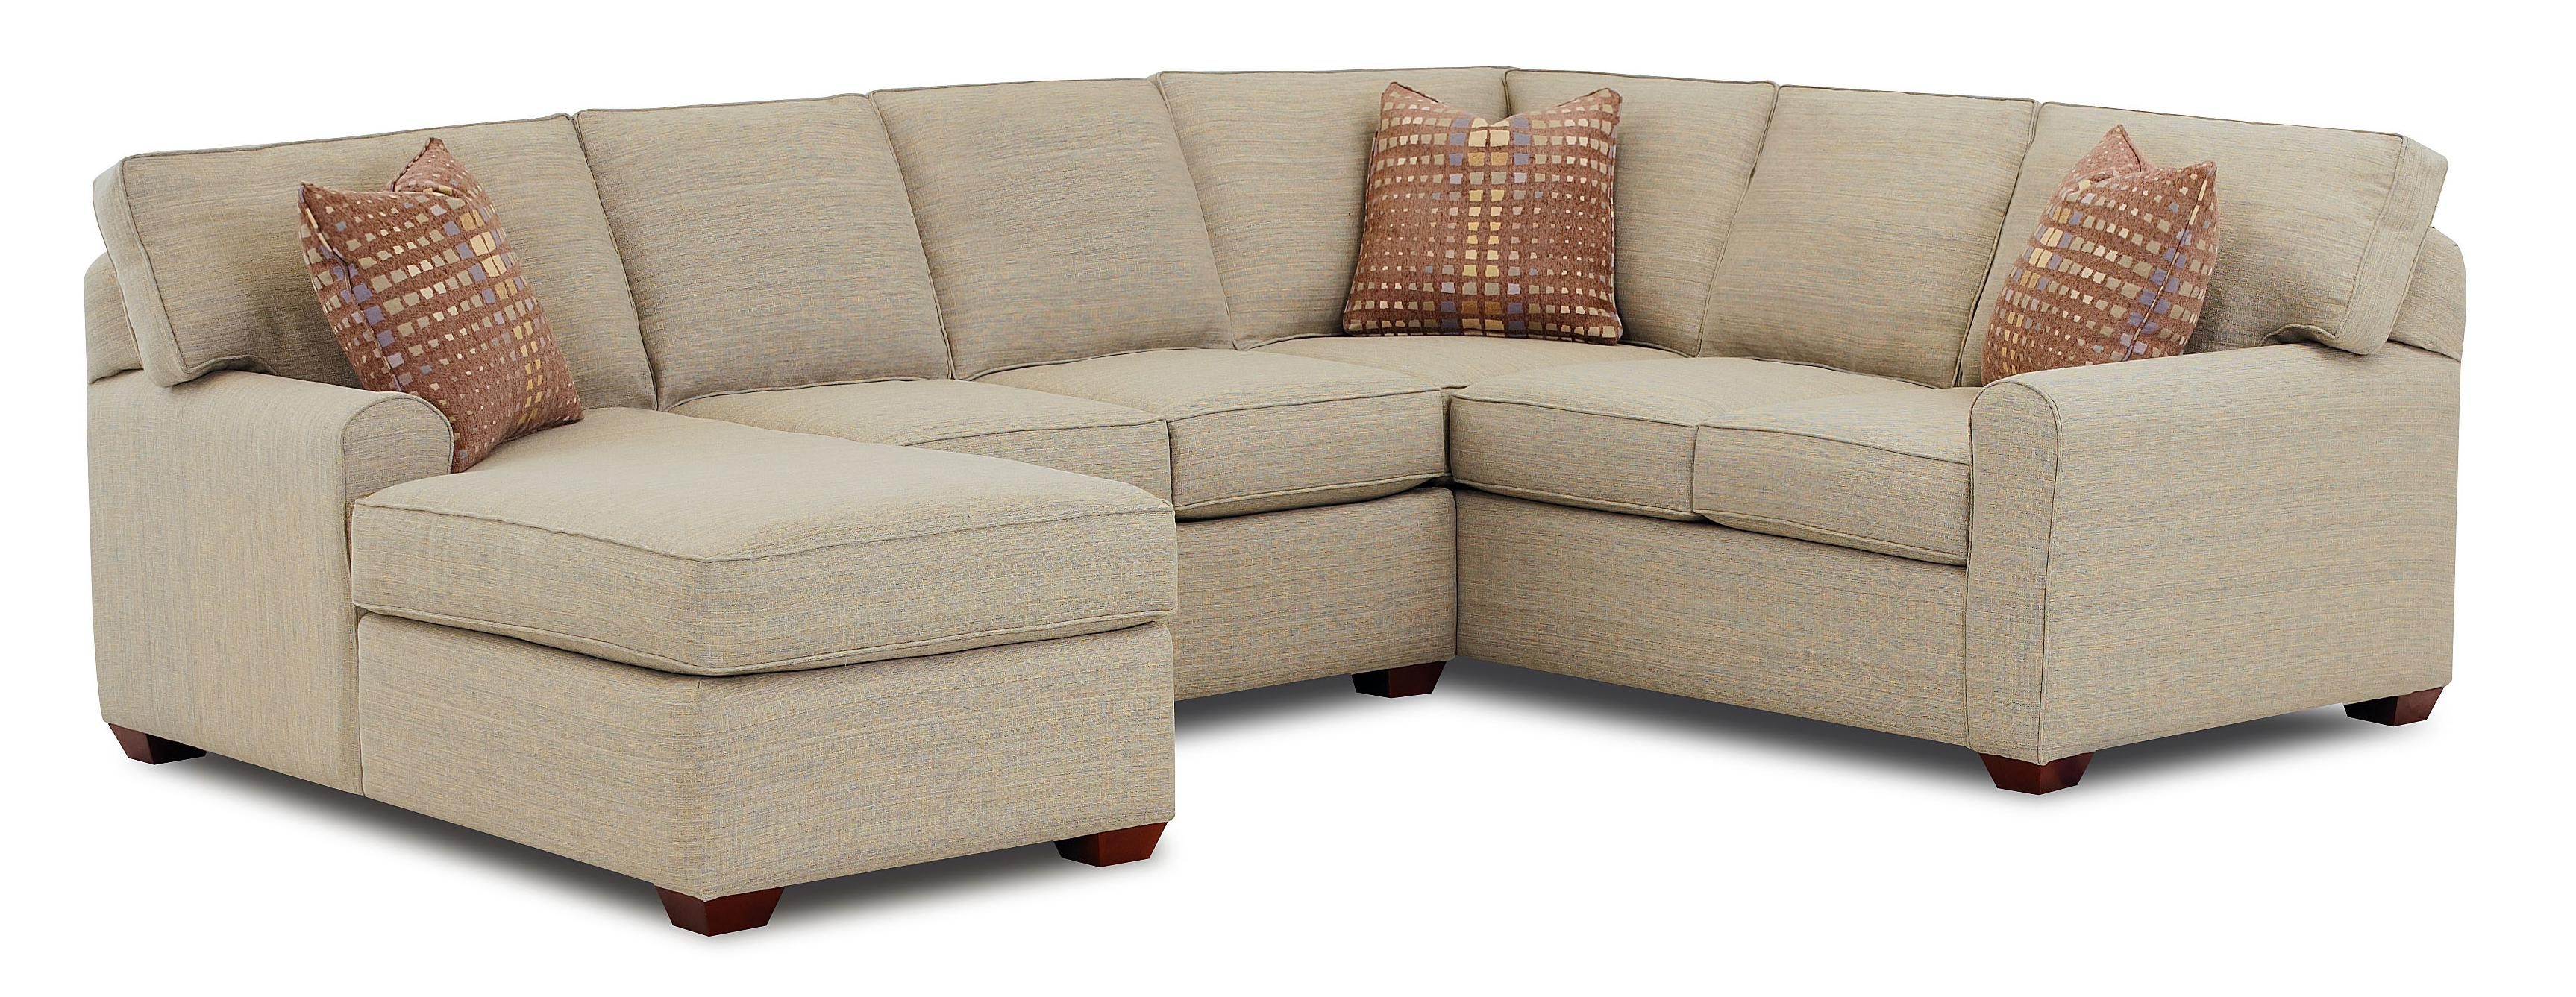 Klaussner Hybrid Sectional Sofa With Left Facing Chaise